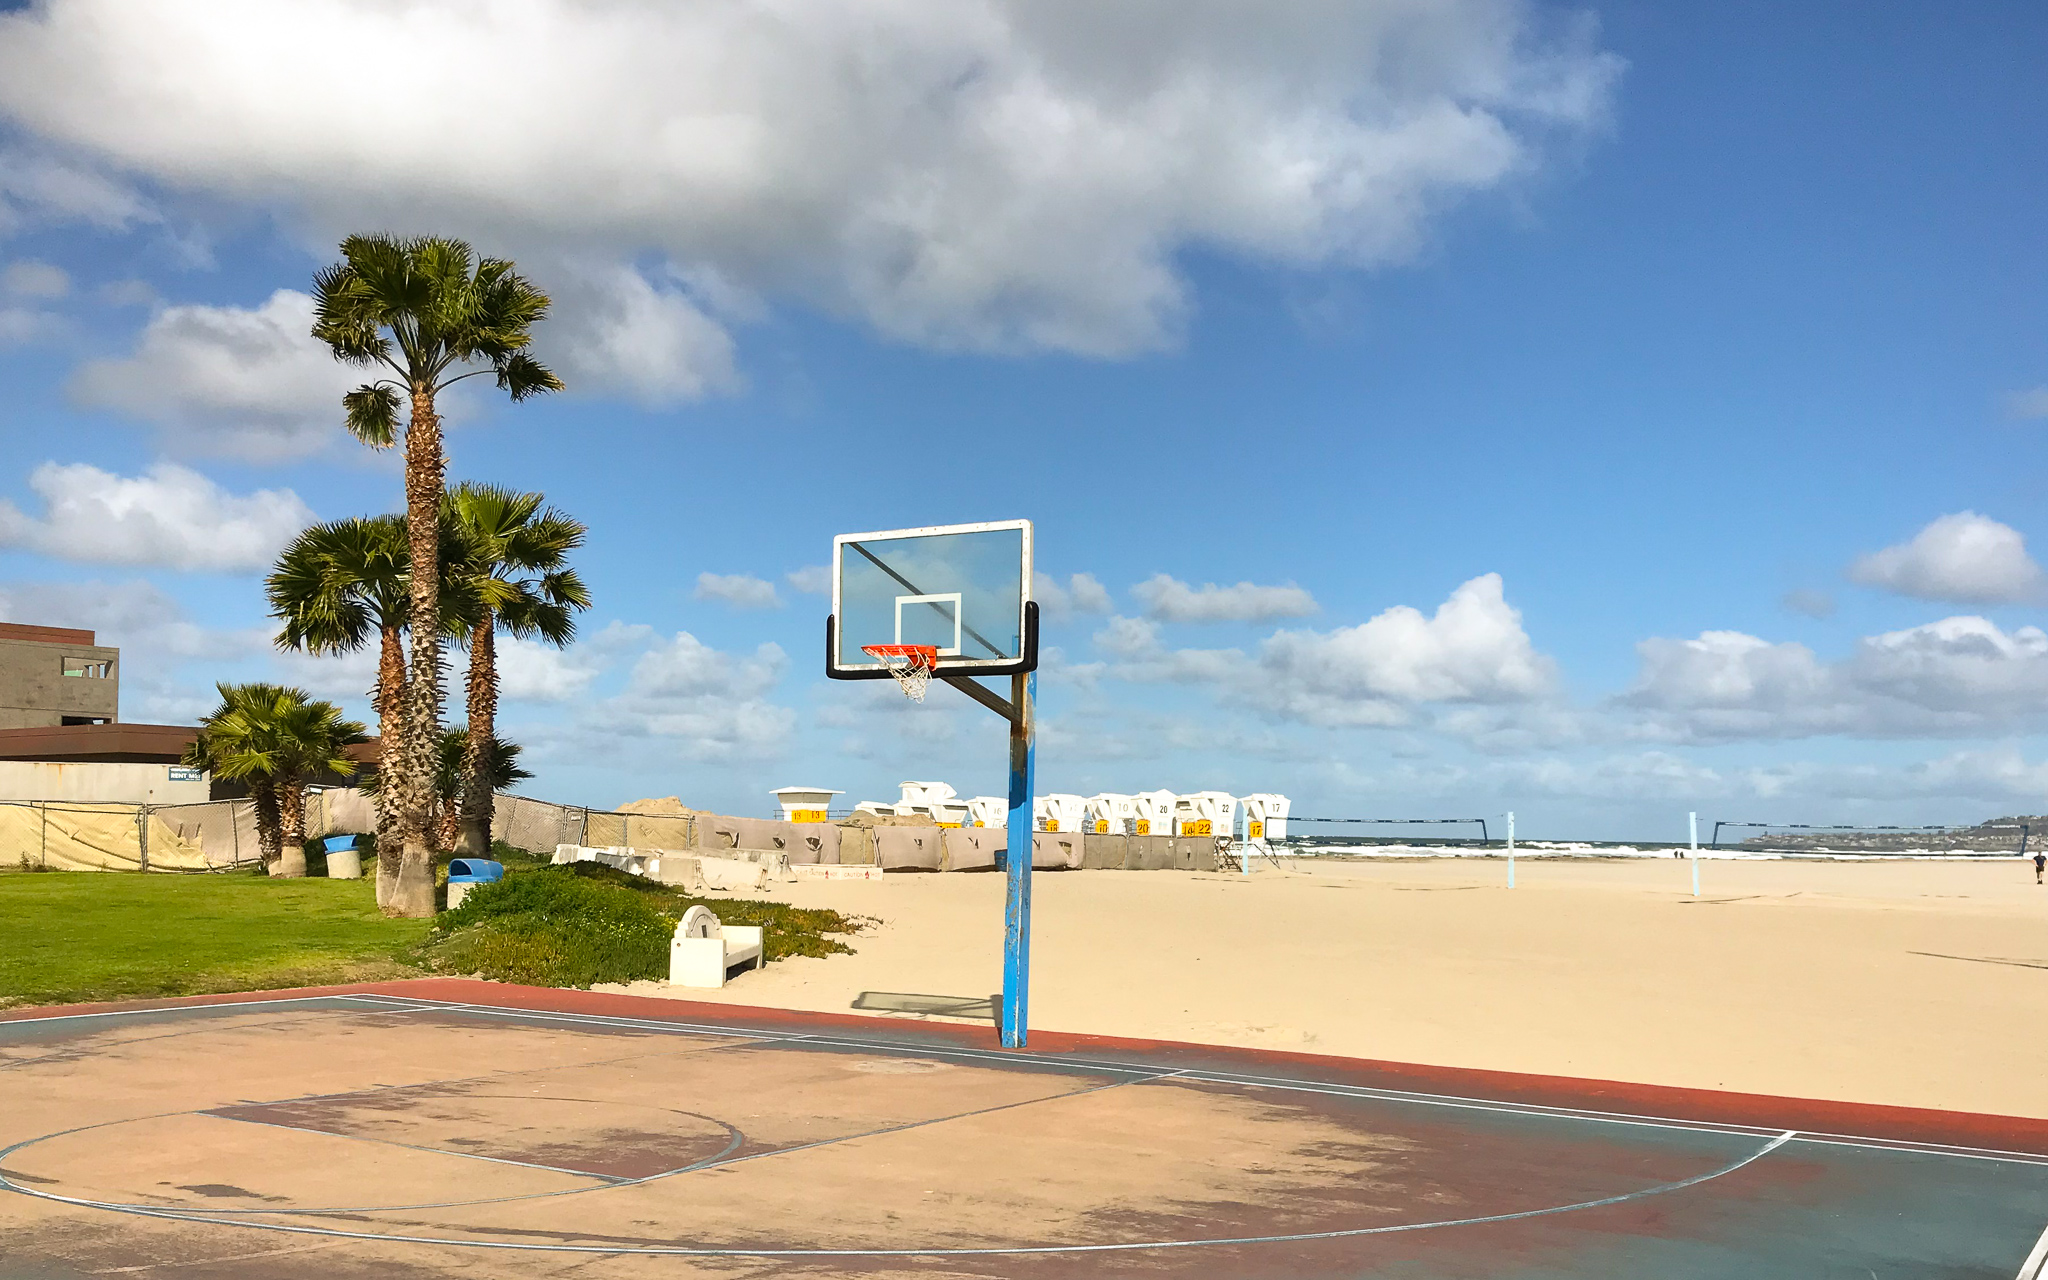 San Diego outdoor basketball courts near the beach